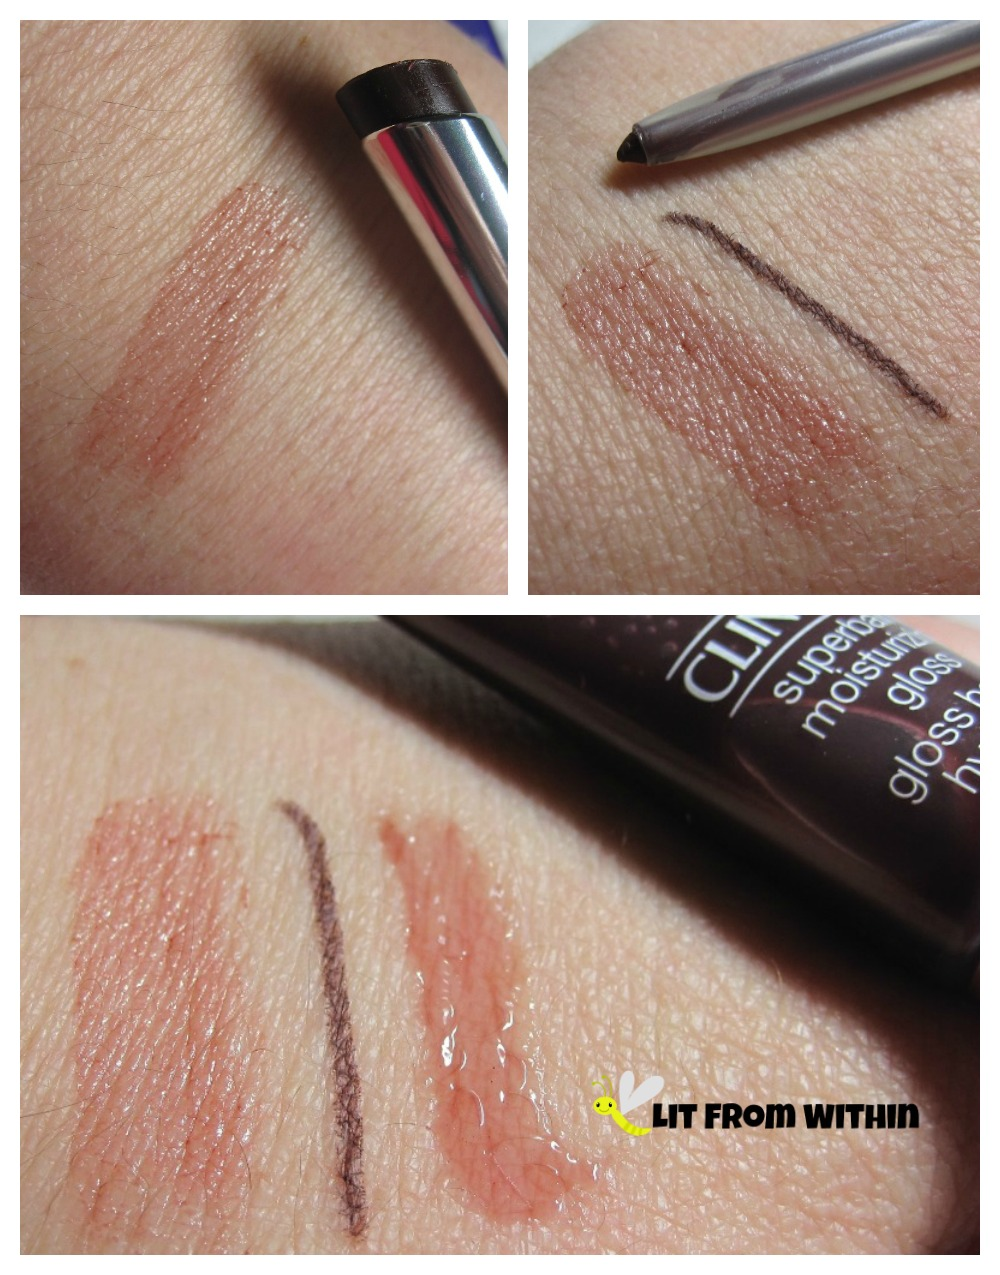 swatches of Clinique Black Honey lipstick, eye liner, and lipgloss.